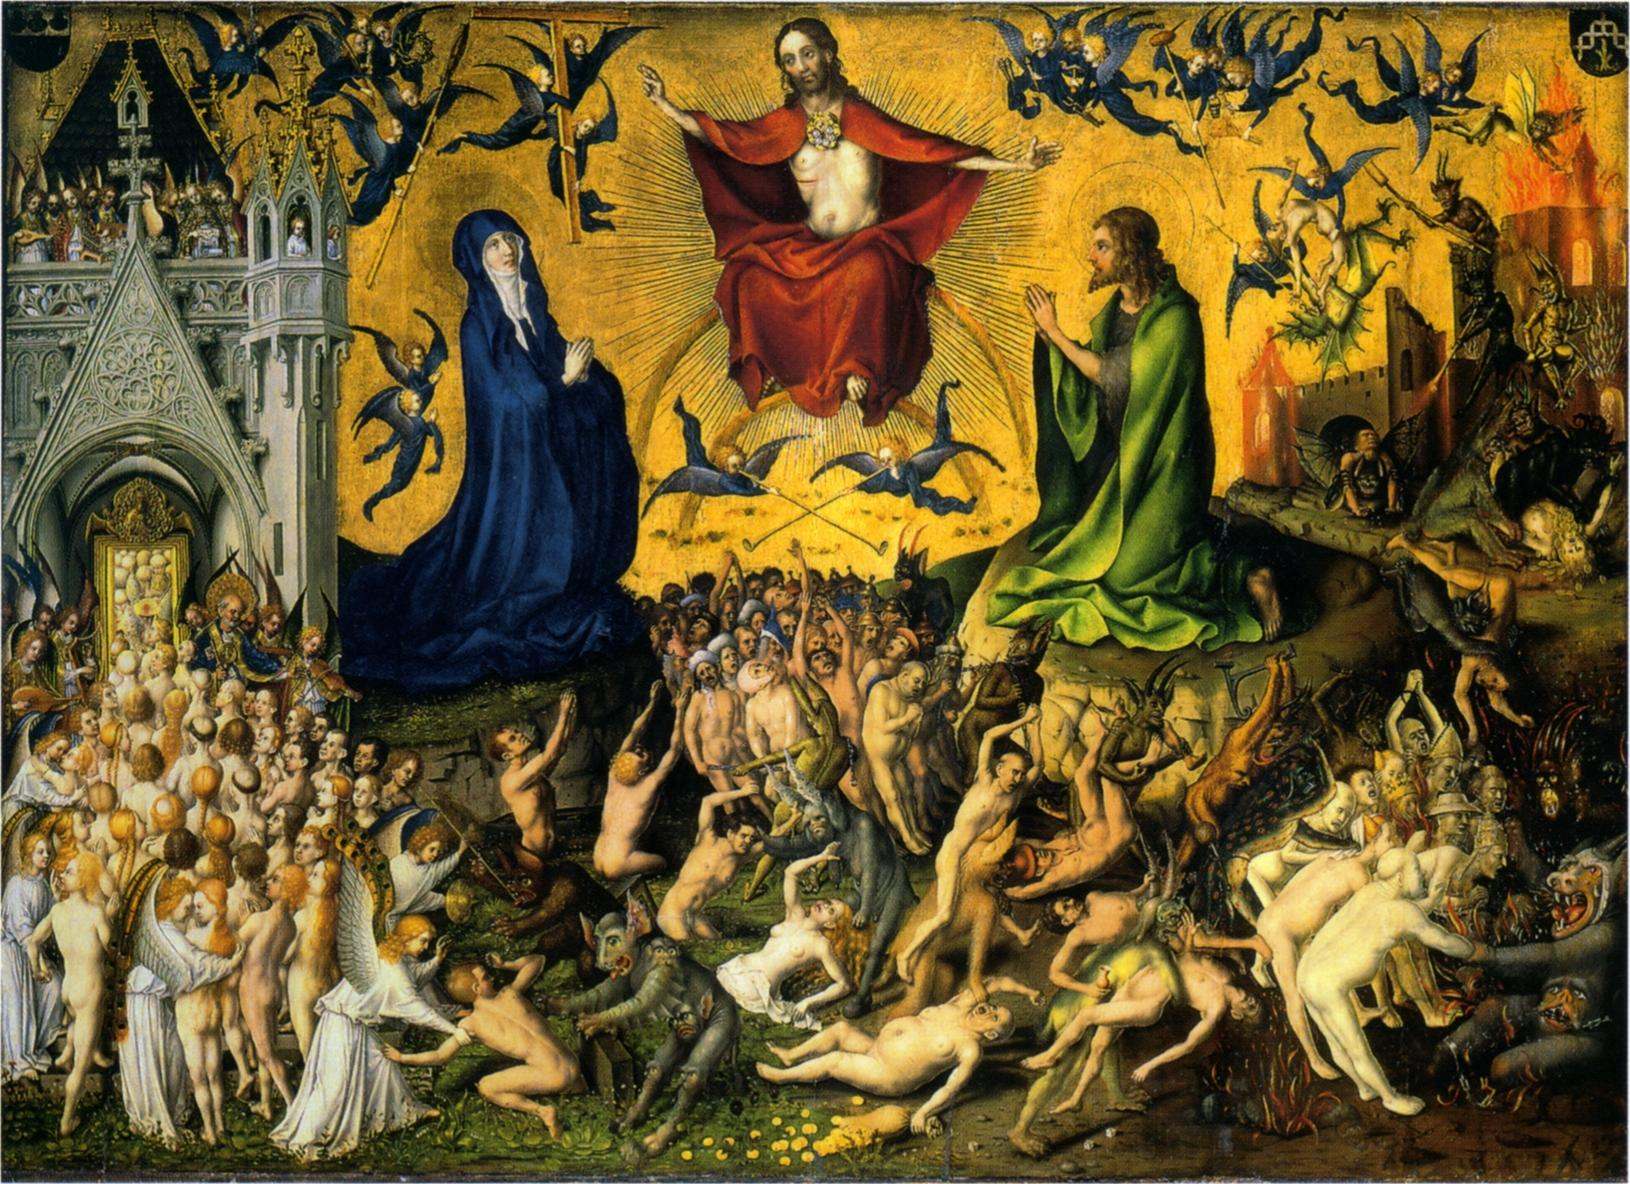 Last Judgment  By Stefan Lochner - Postcard, Public Domain, https://commons.wikimedia.org/w/index.php?curid=153939